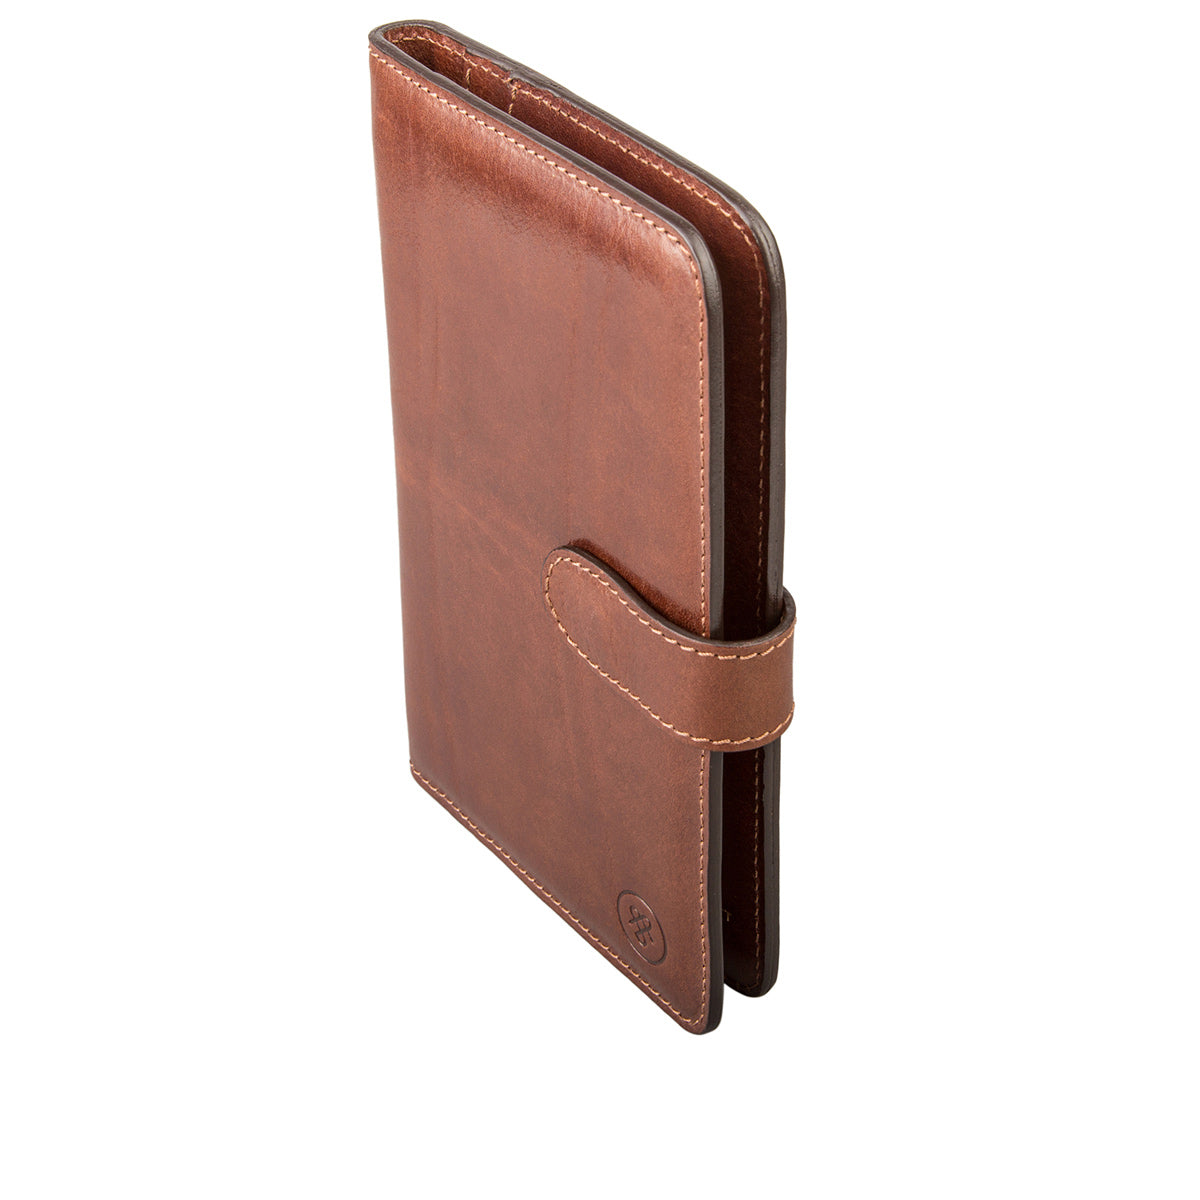 Image 3 of the 'Vieste' Chestnut Veg-Tanned Leather Travel Wallet